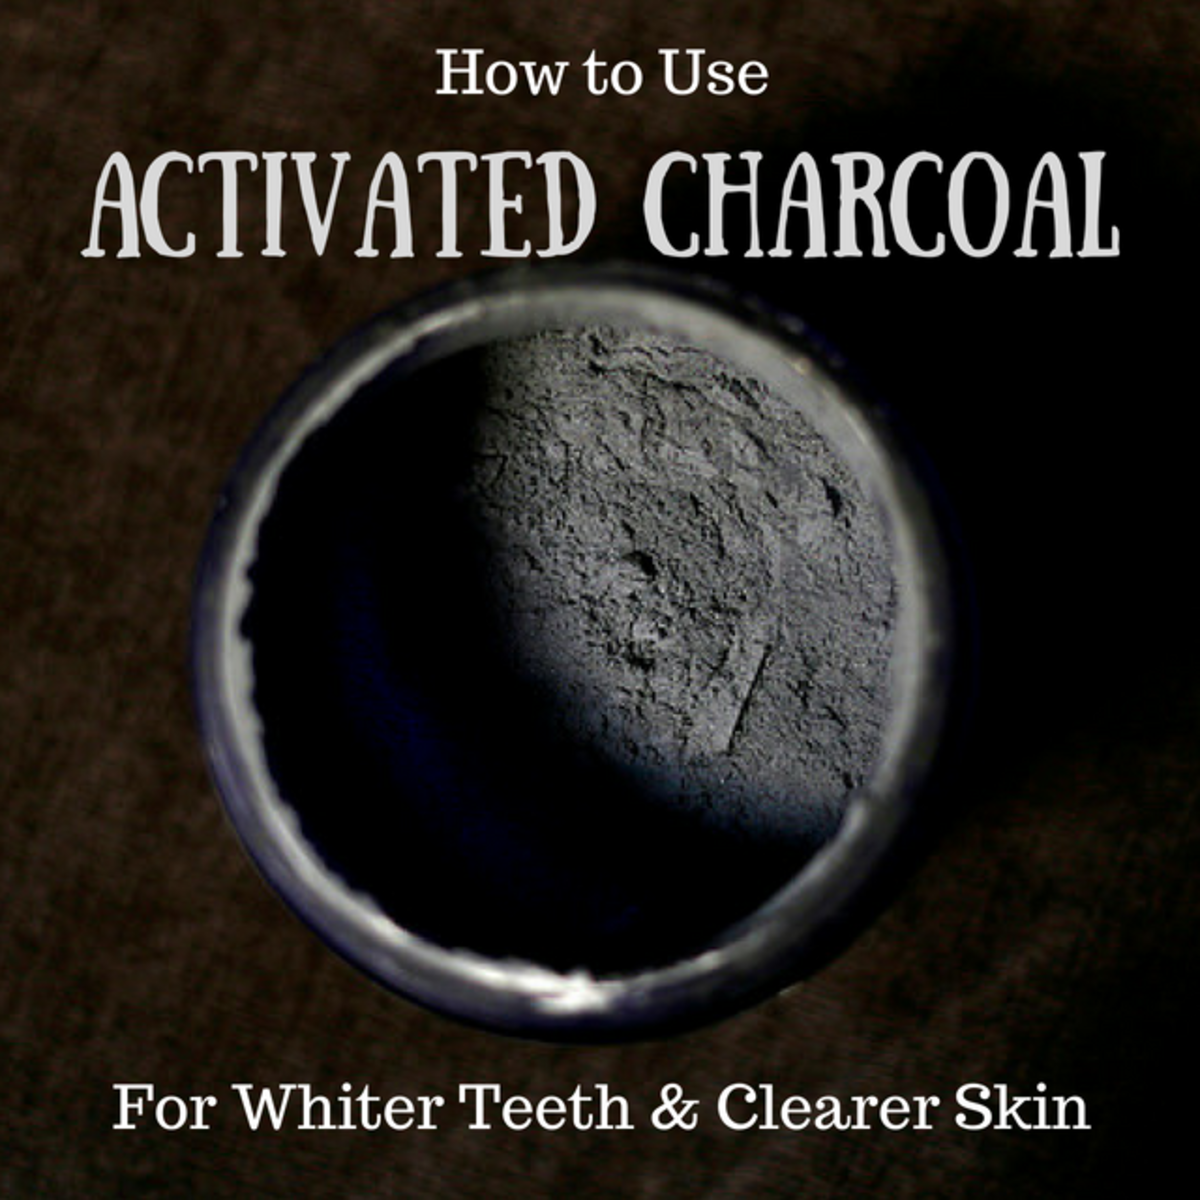 How to Use Activated Charcoal for Whiter Teeth and Clearer Skin